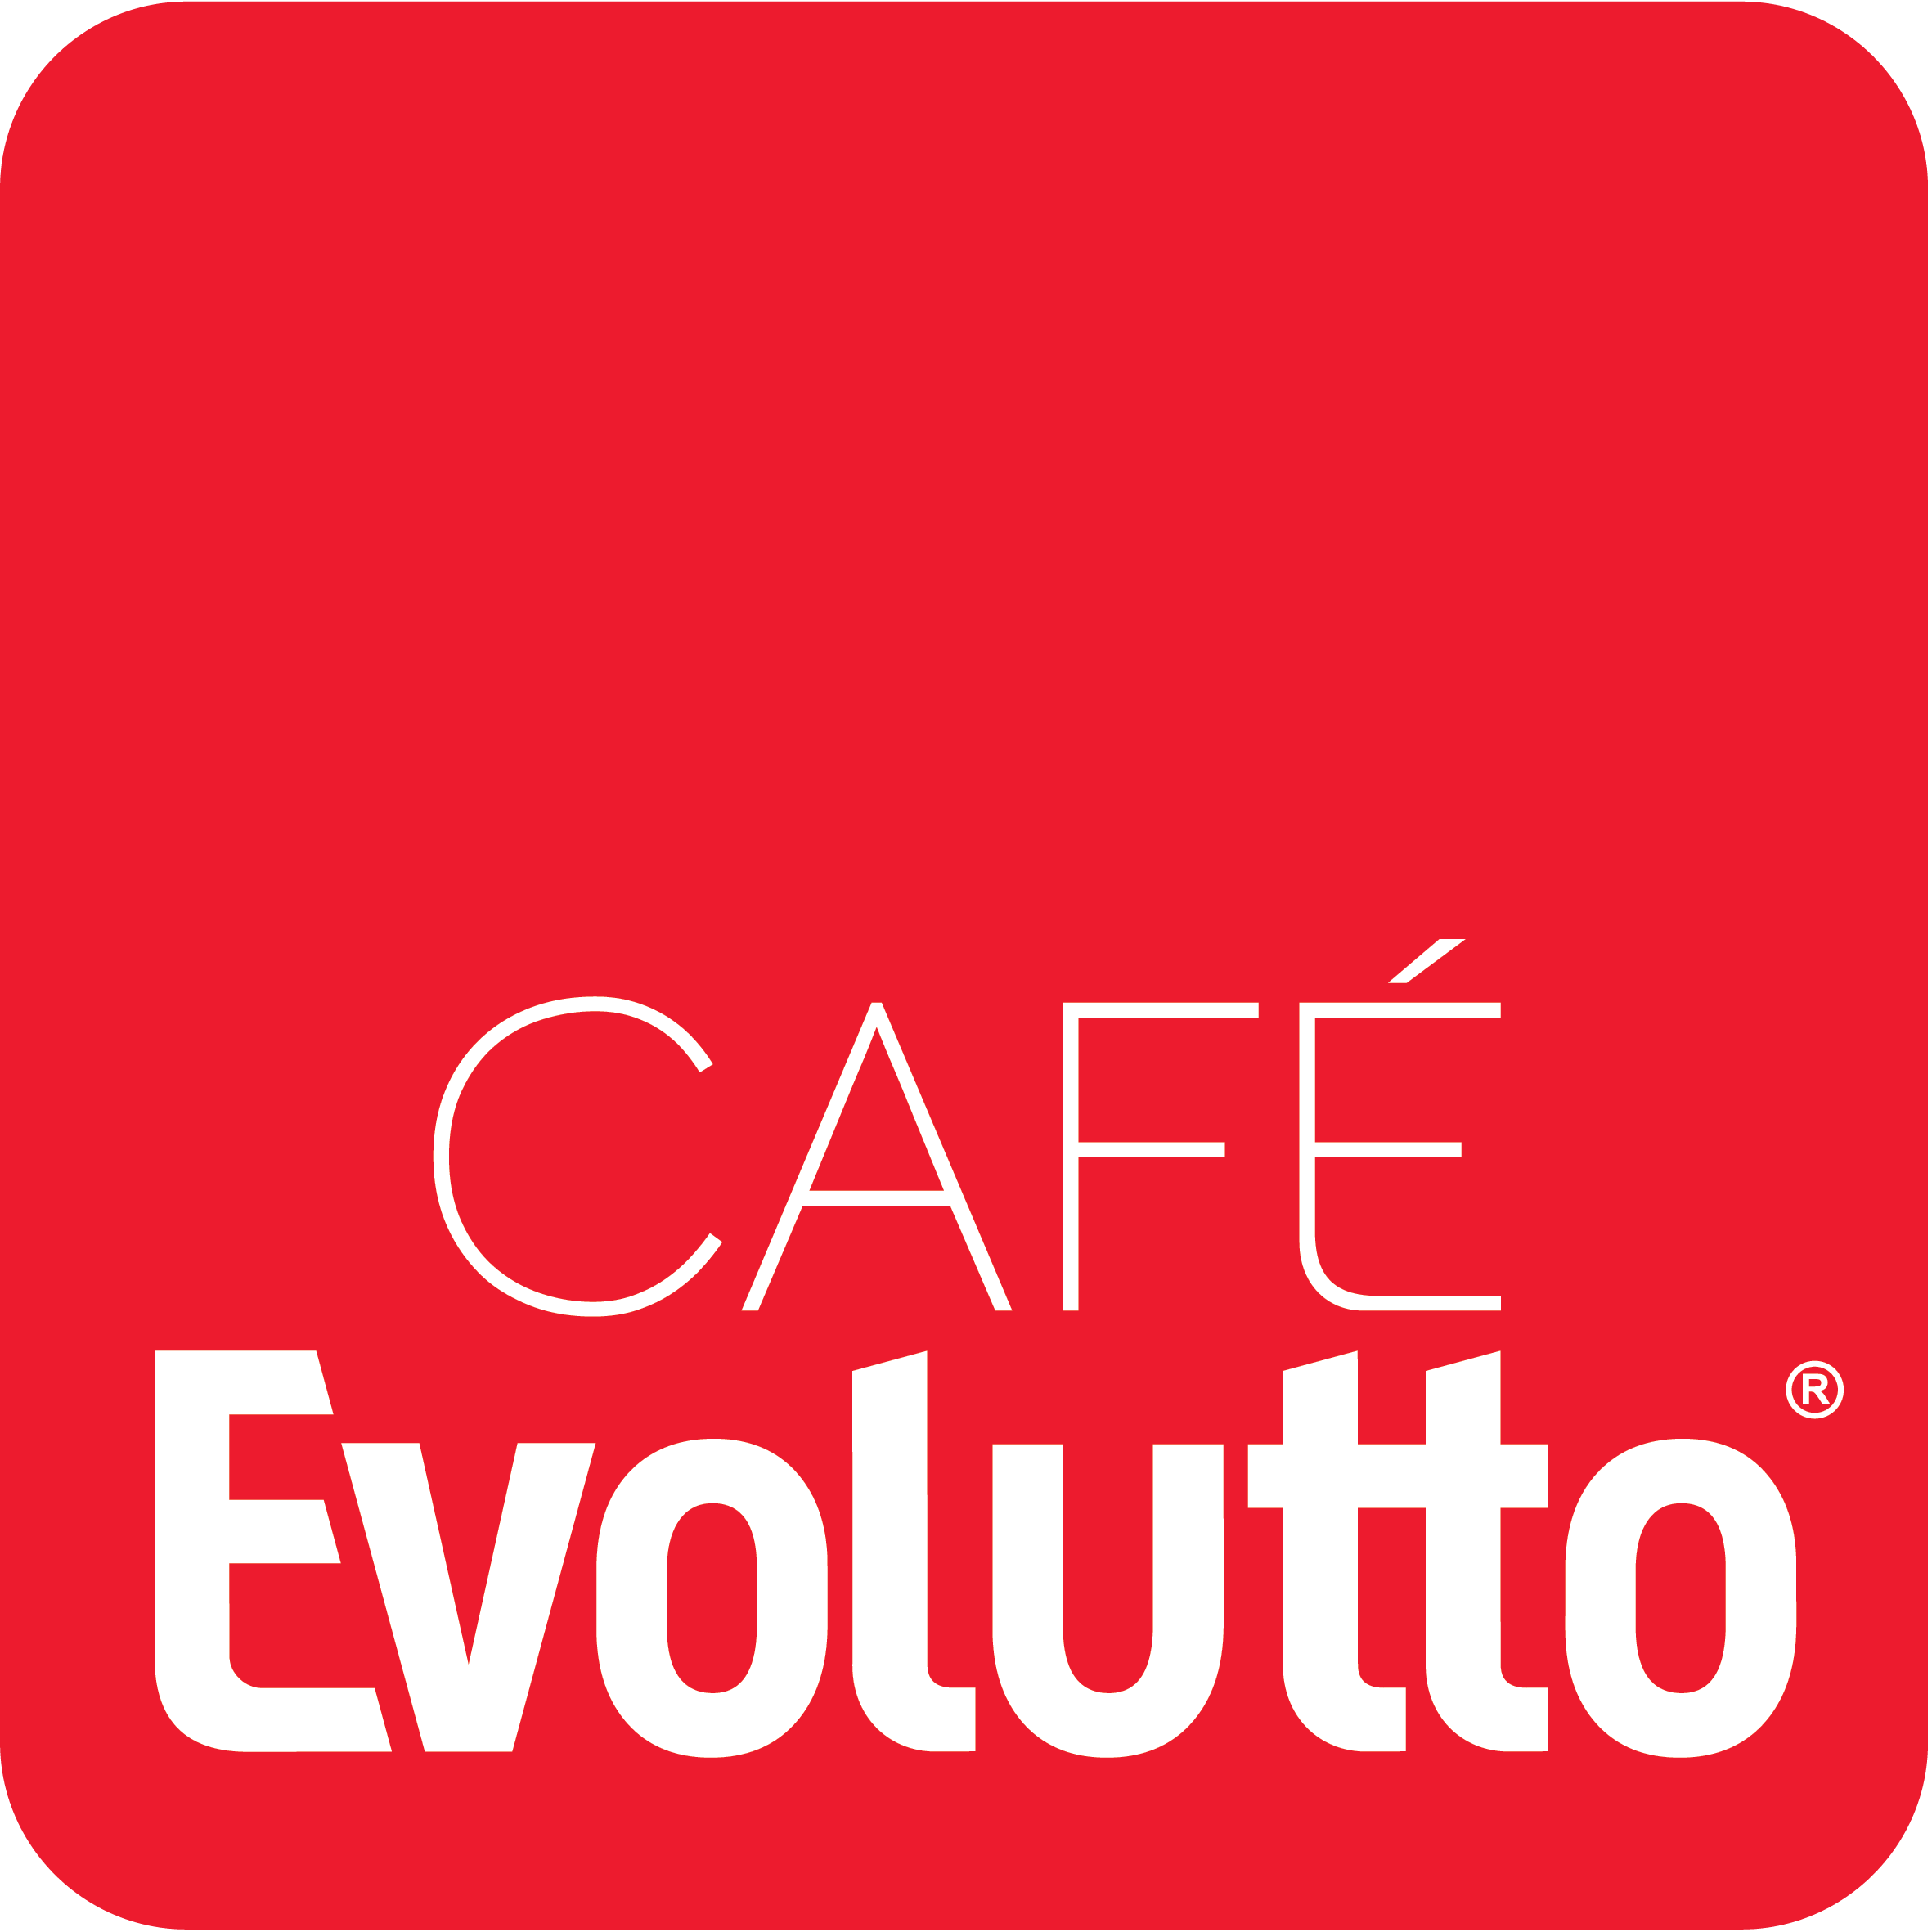 Café Evolutto